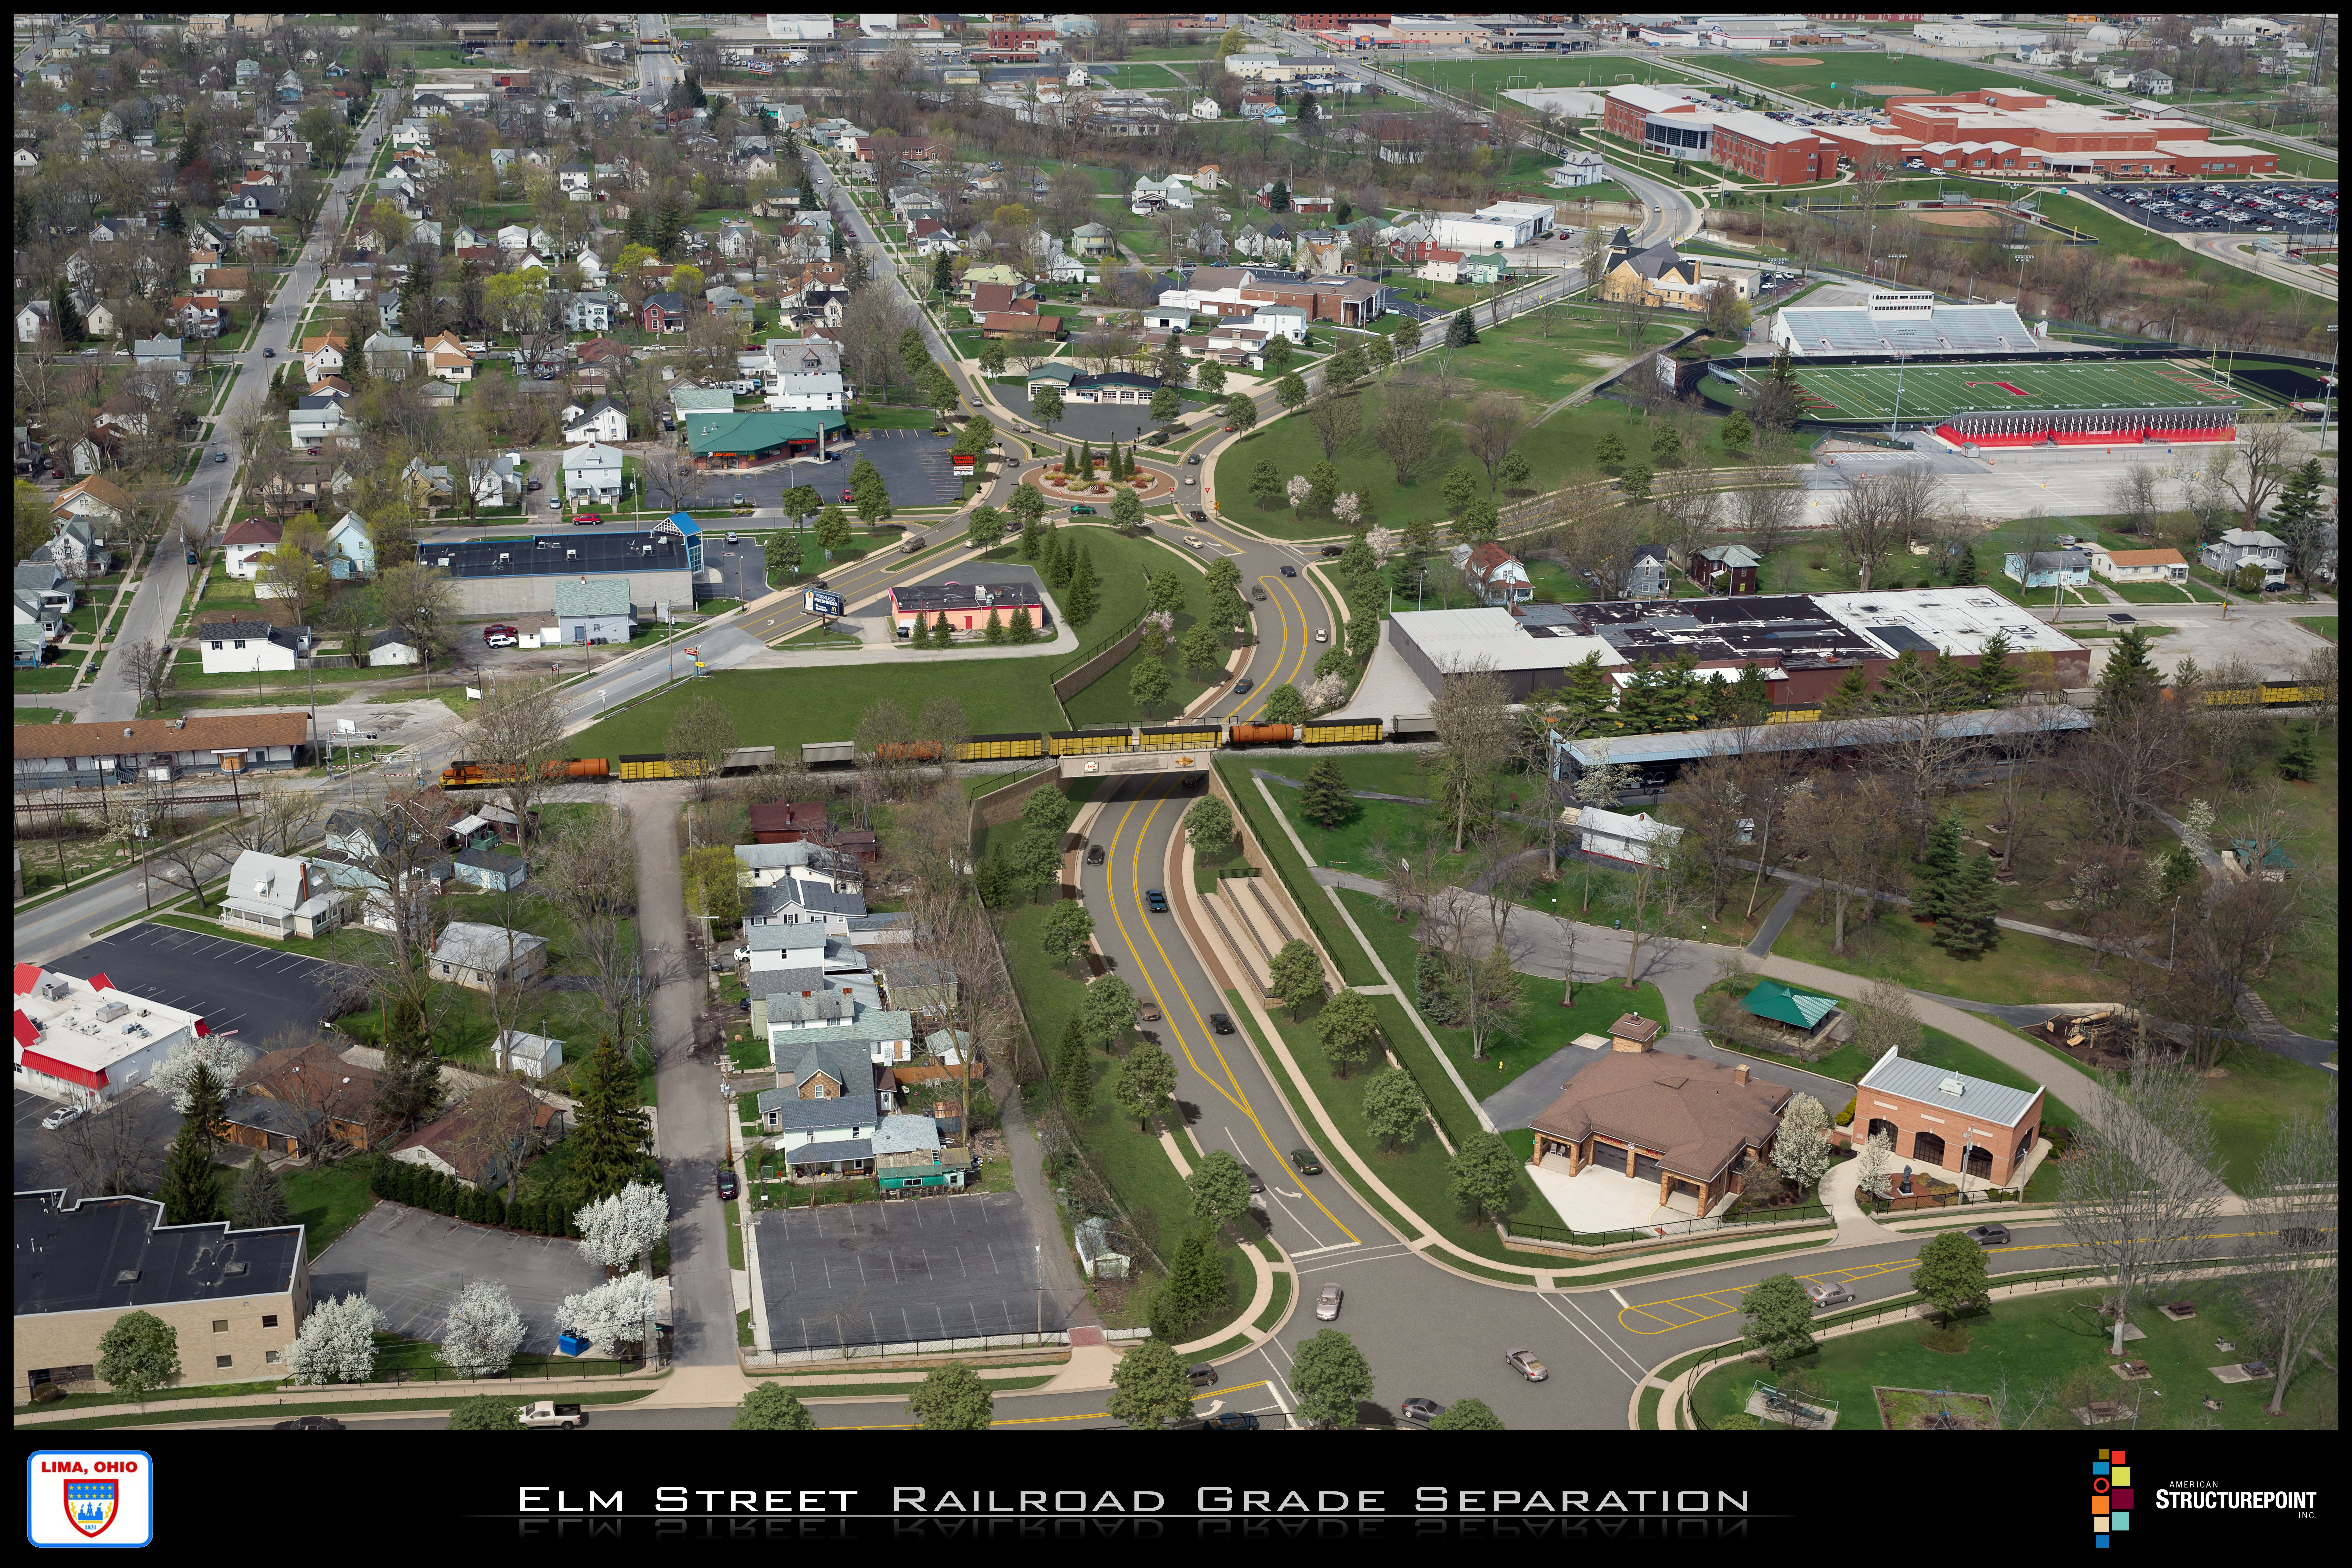 Concept of Elm Street Railroad Underpass